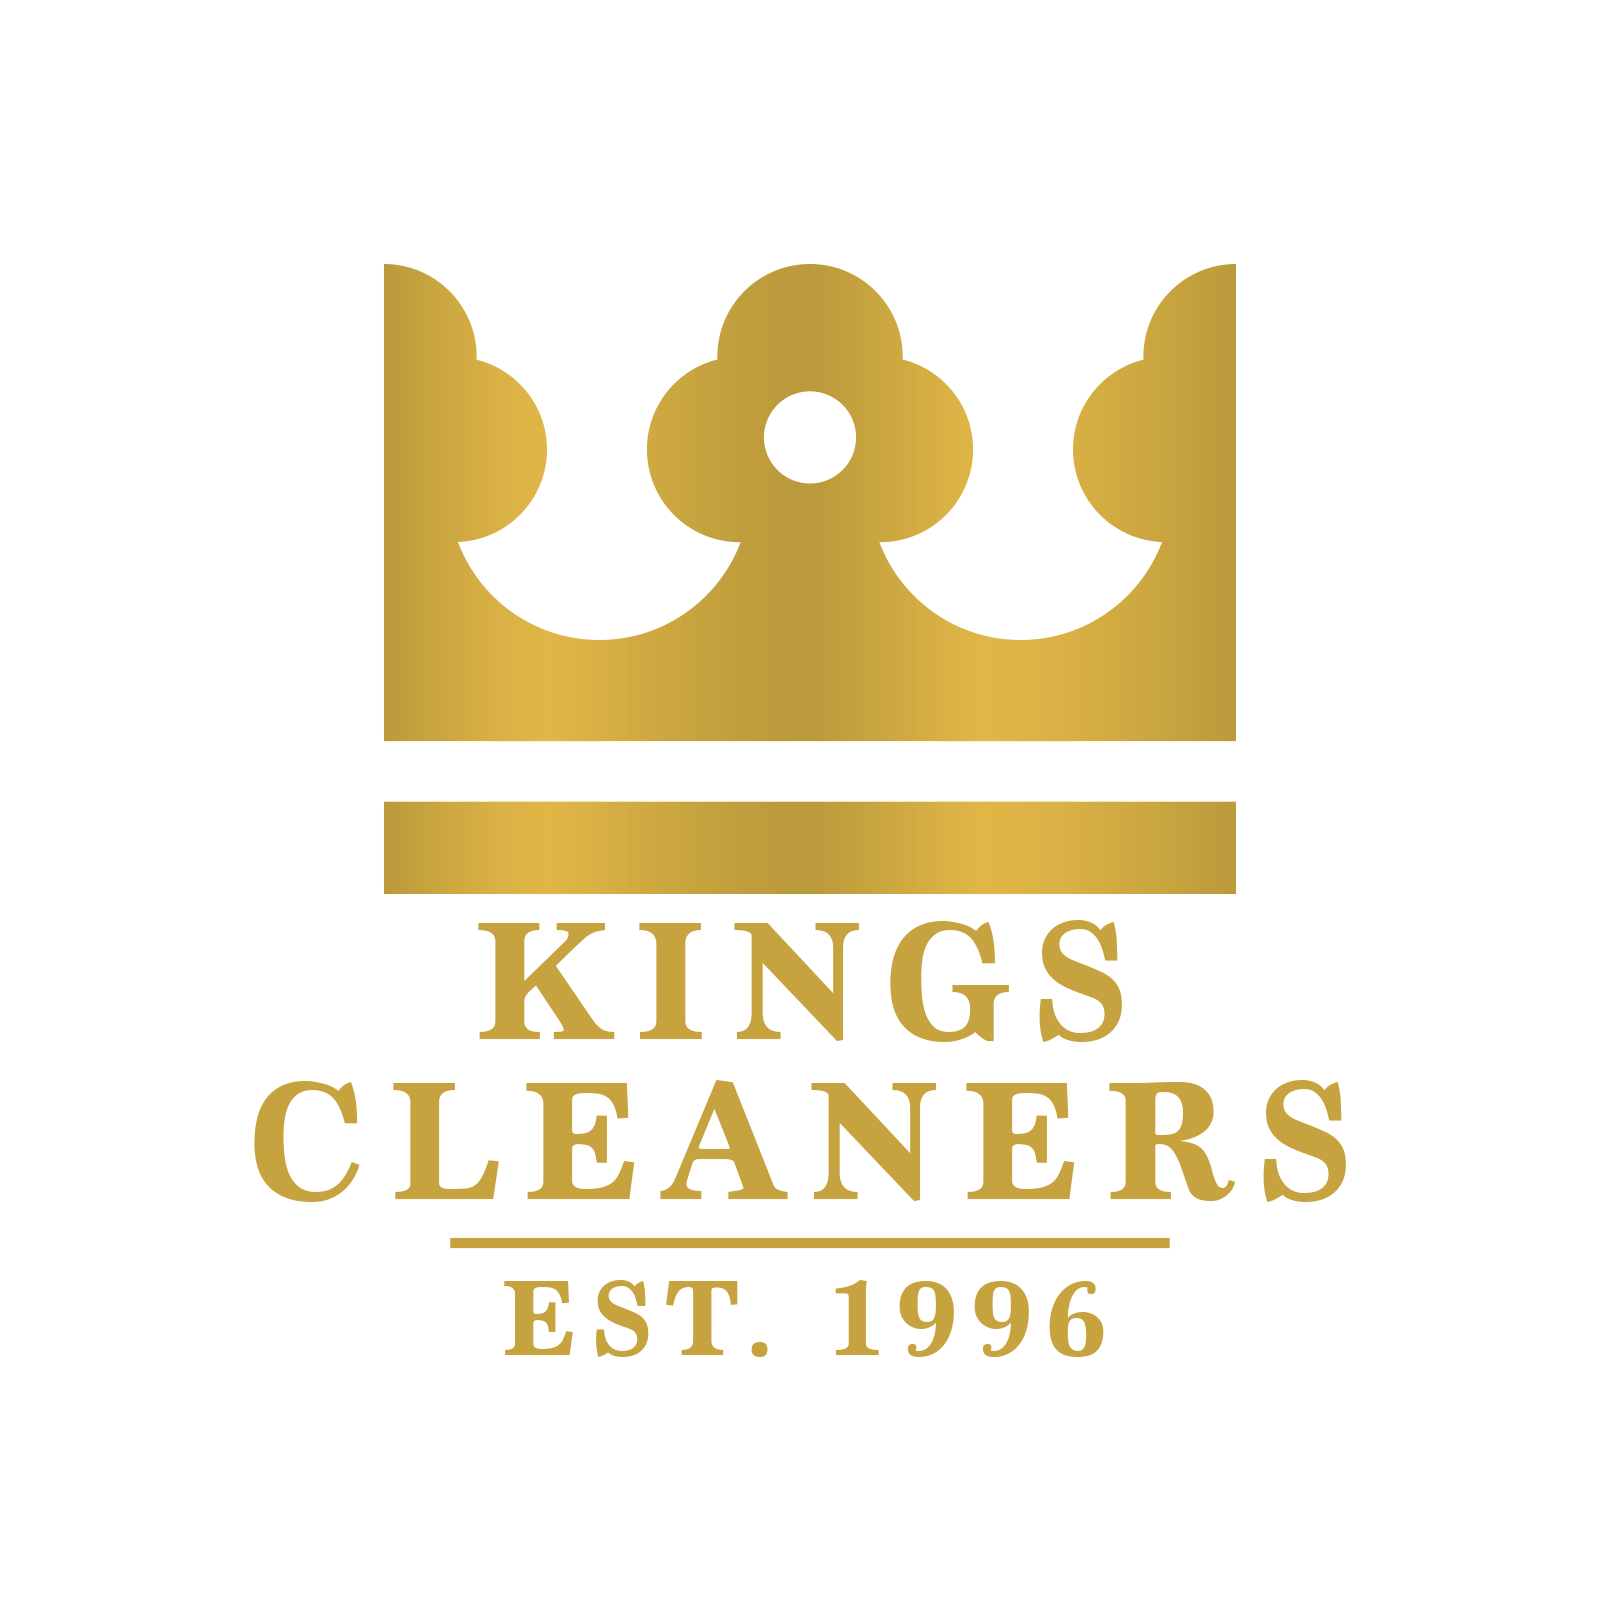 Kings Cleaners